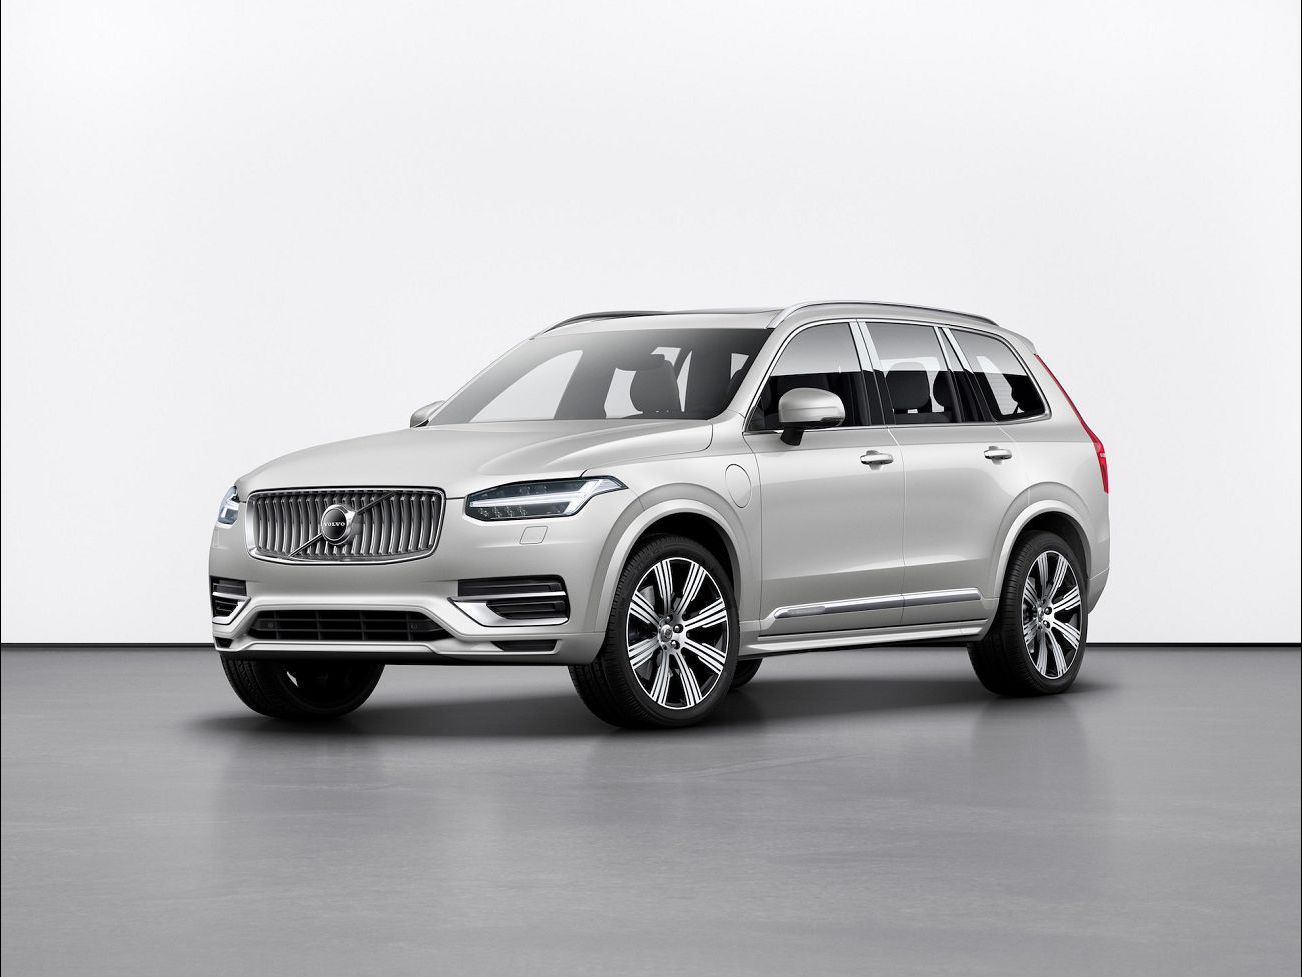 New Volvo Xc90 2022 All Model 2017 For Sale Review Wheels 2012 Floor Mats